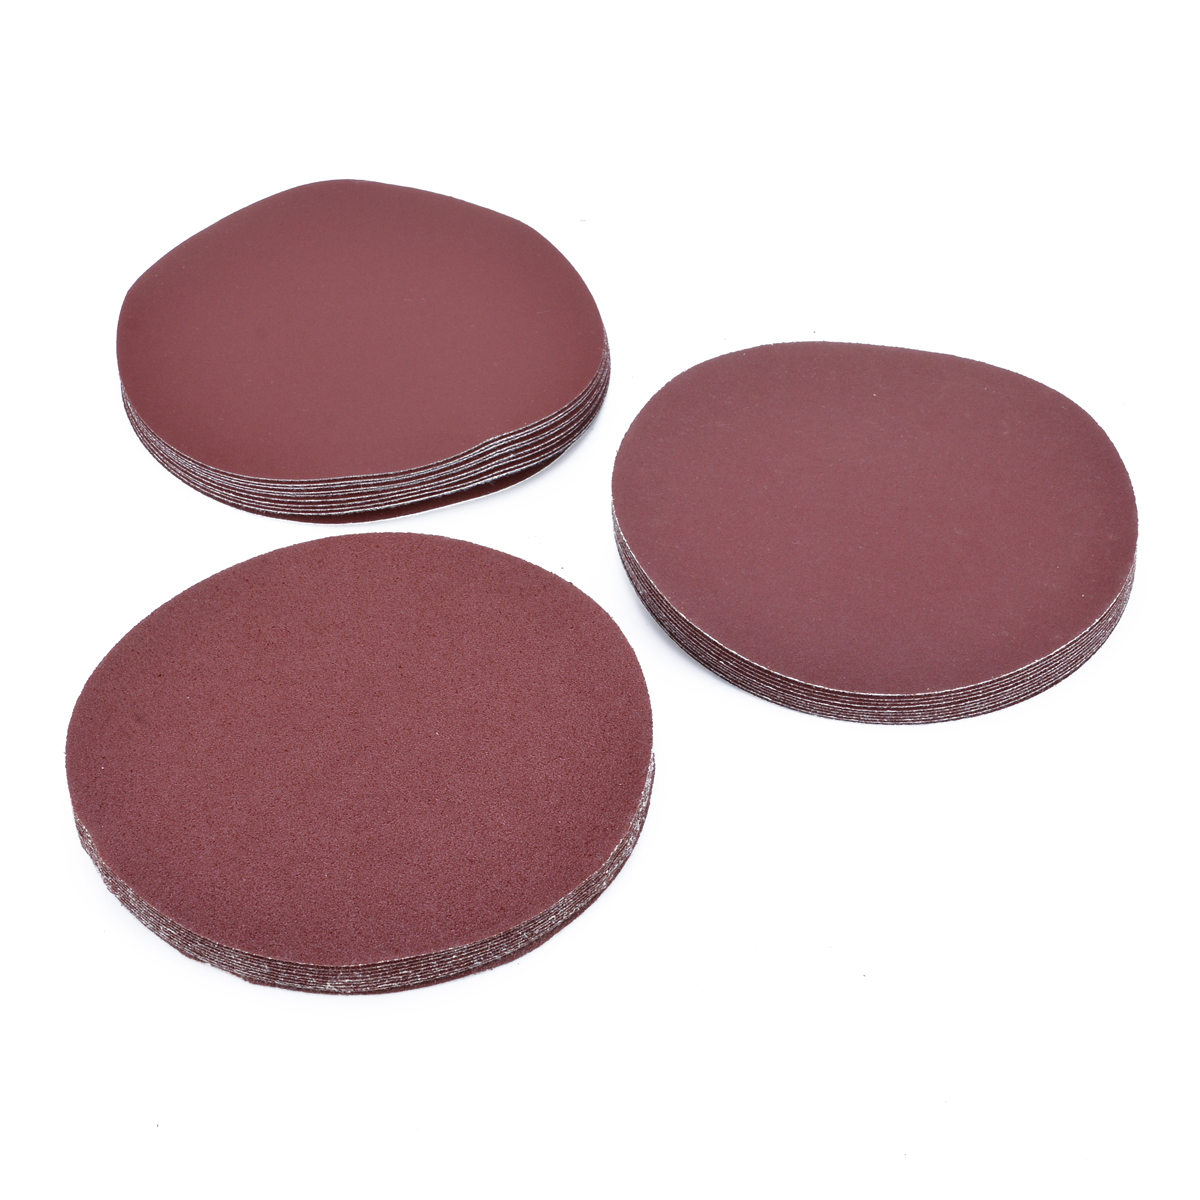 30Pcs 6 Sander Paper 80/180/320 Grit Sanding Disc Stick On Sandpaper Peel Sanding Disk for Polishing Rotary Tool30Pcs 6 Sander Paper 80/180/320 Grit Sanding Disc Stick On Sandpaper Peel Sanding Disk for Polishing Rotary Tool